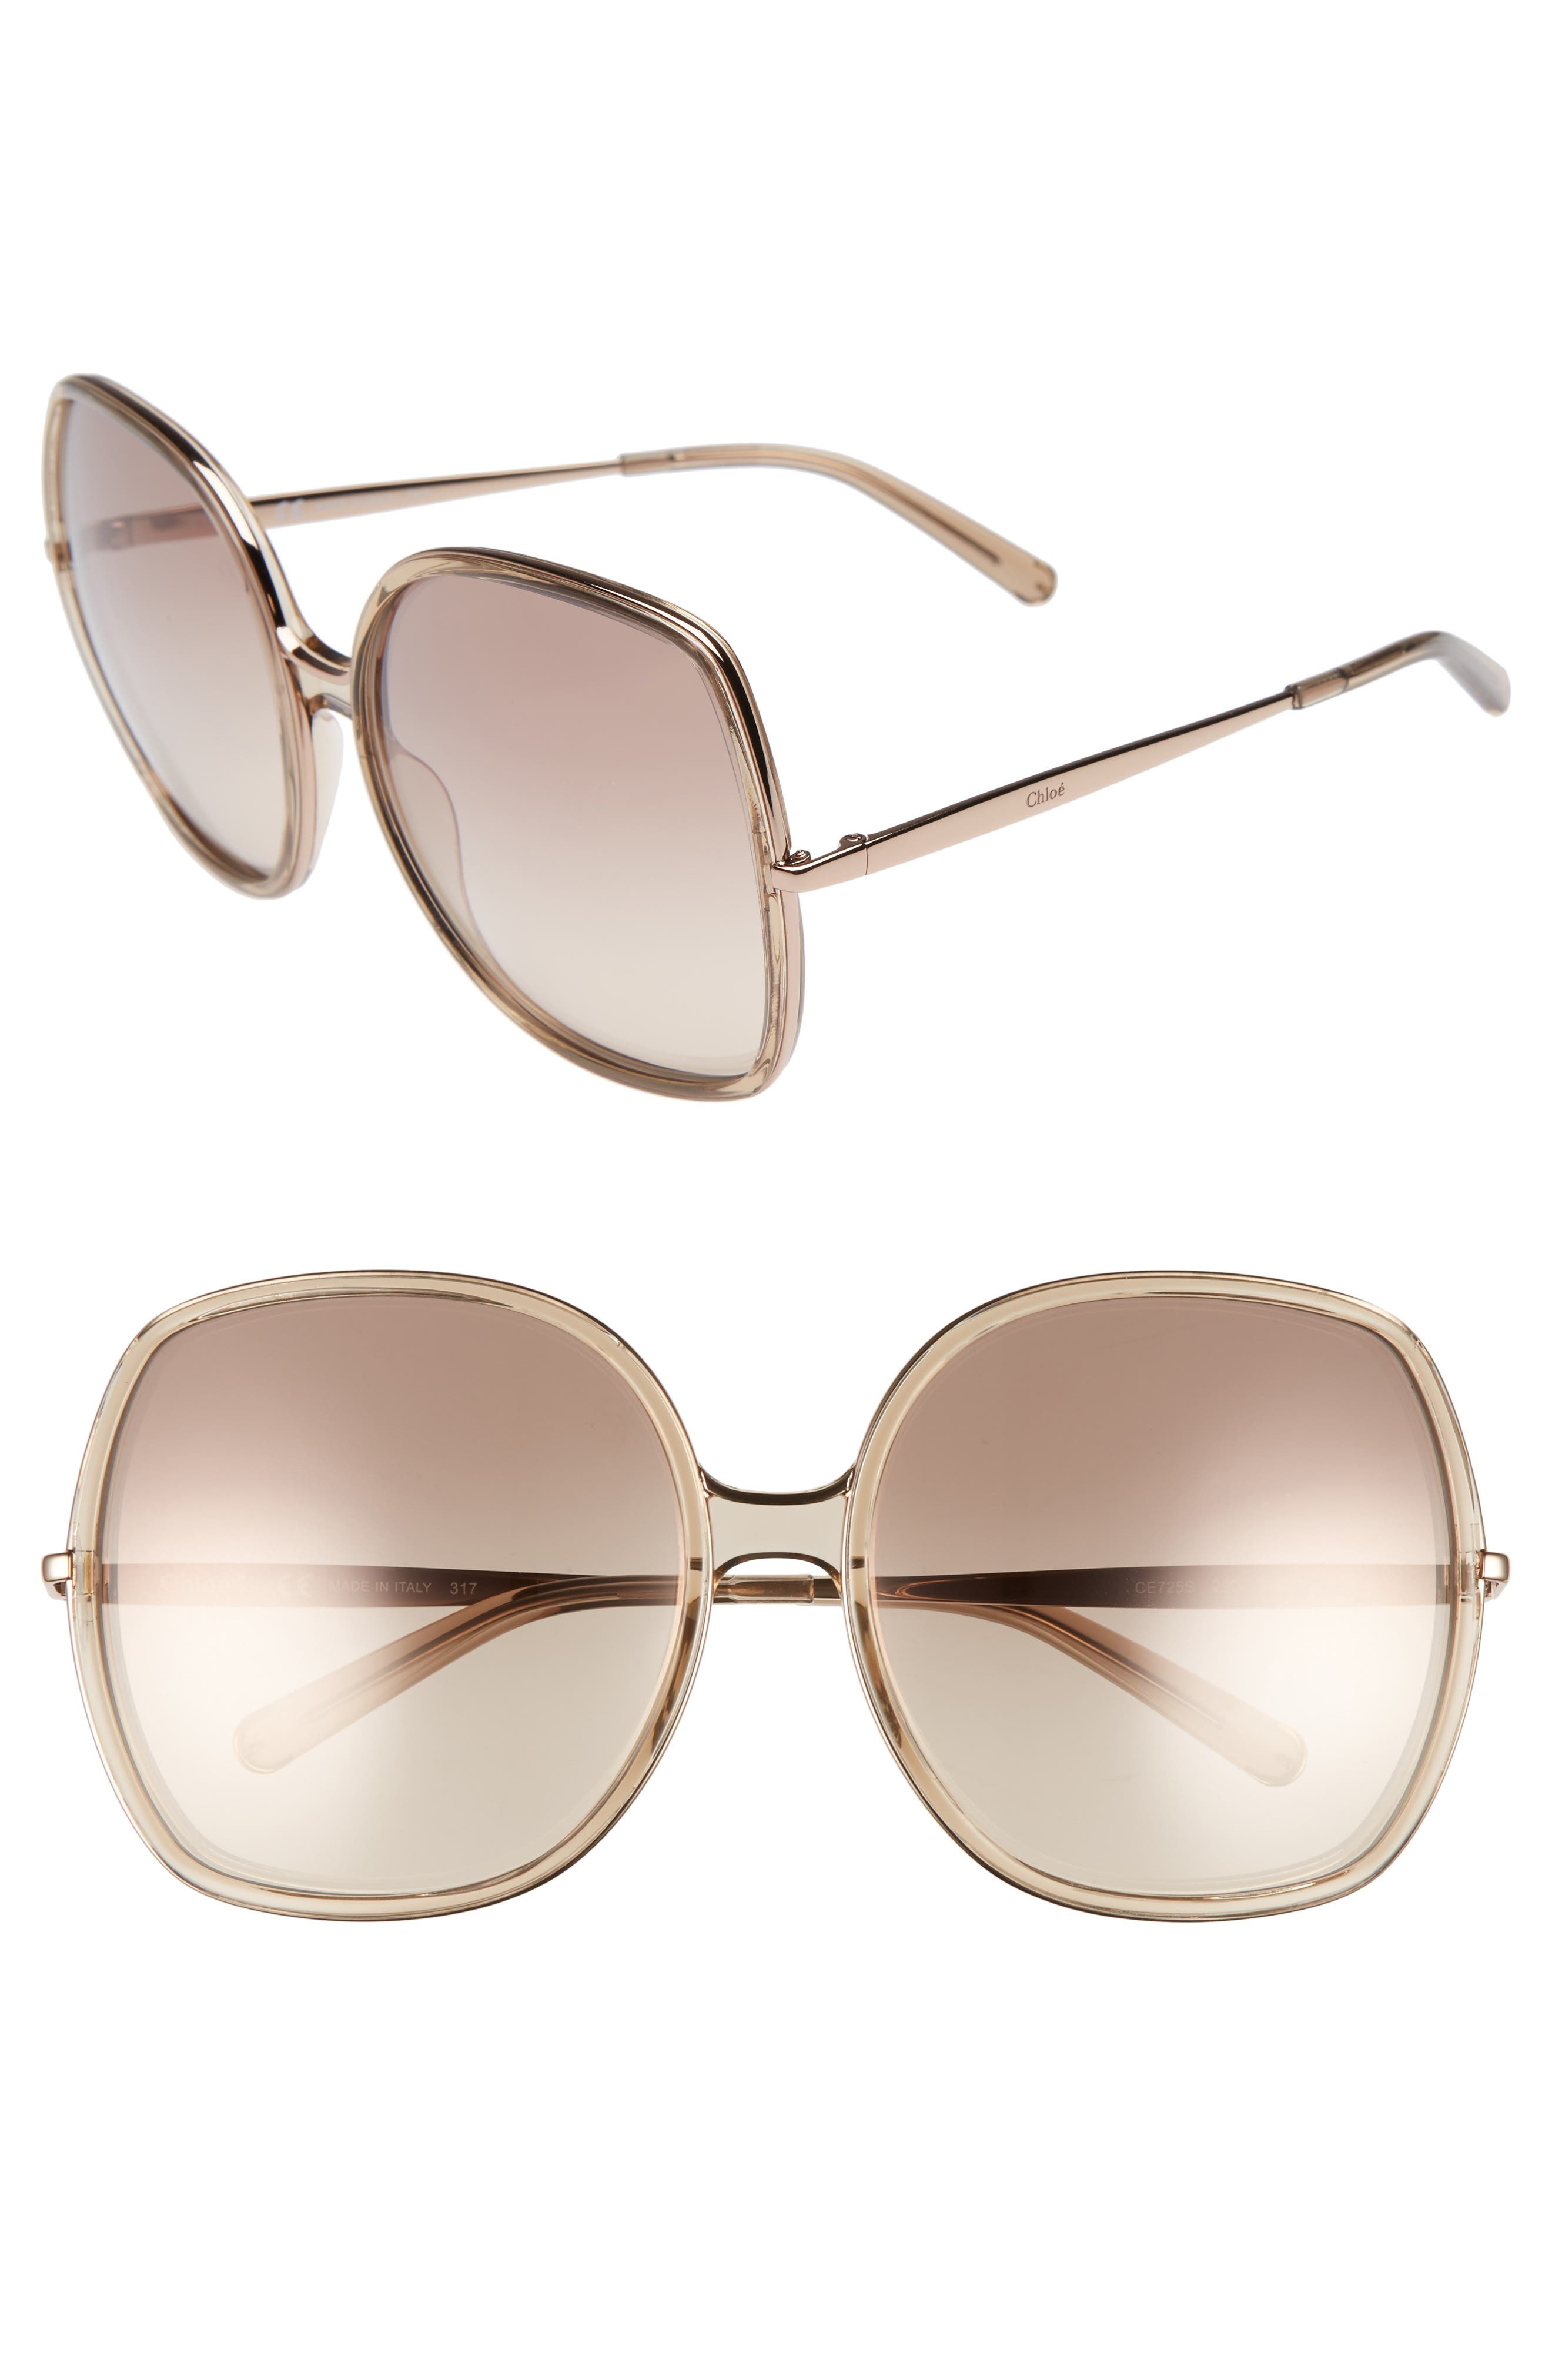 Main Image - Chloé 62mm Oversized Gradient Lens Square Sunglasses